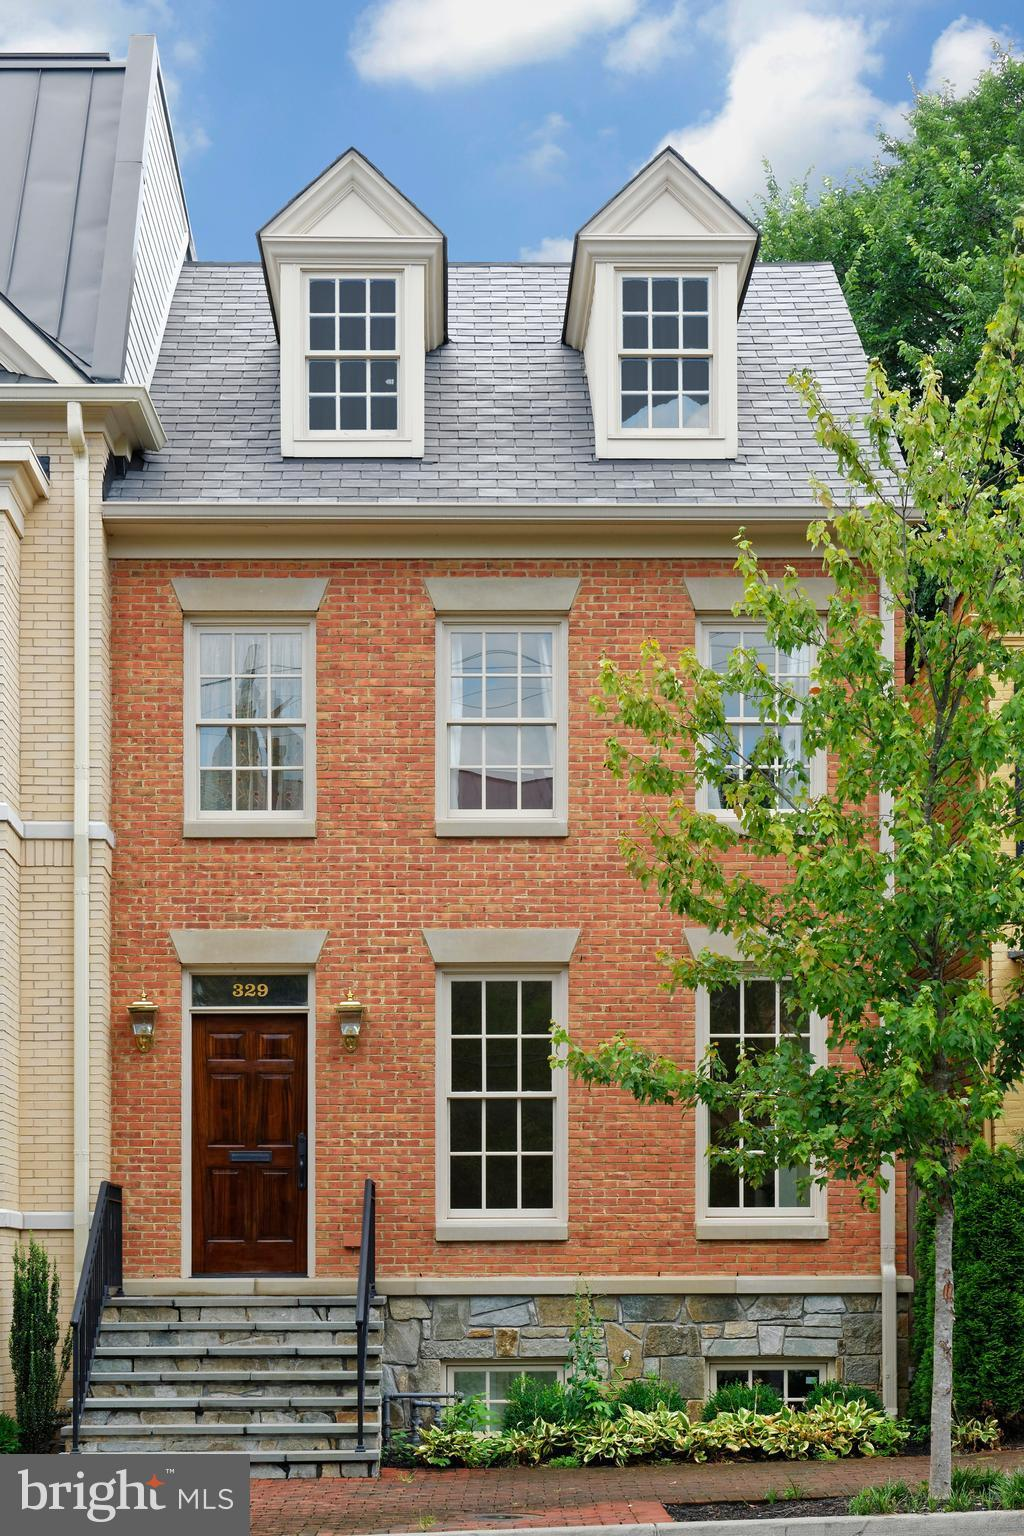 This stately brick townhouse built in 2014 by highly respected local builders features 5 bedrooms, 5.5 baths, state-of-the-art kitchen which opens to a family room & patio/garden. Lovely master suite offers multiple closets and spacious ensuite bath. Wonderful high ceilings, deep moldings, freshly painted throughout, 2 gas fireplaces, recreation room and separate au pair suite. Off-street parking.